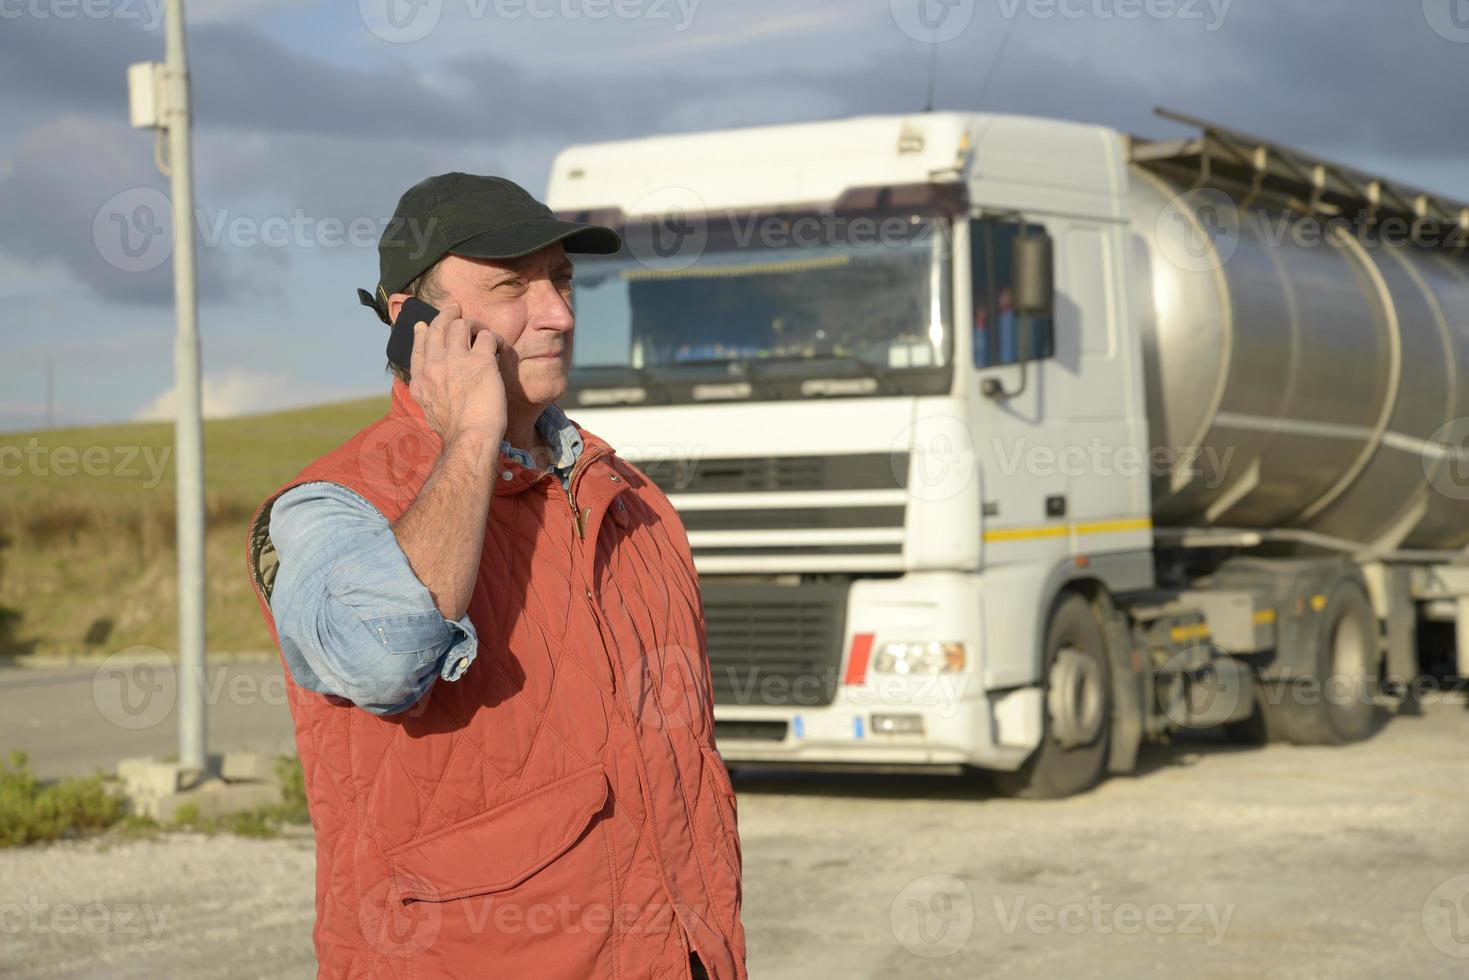 Truck driver photo